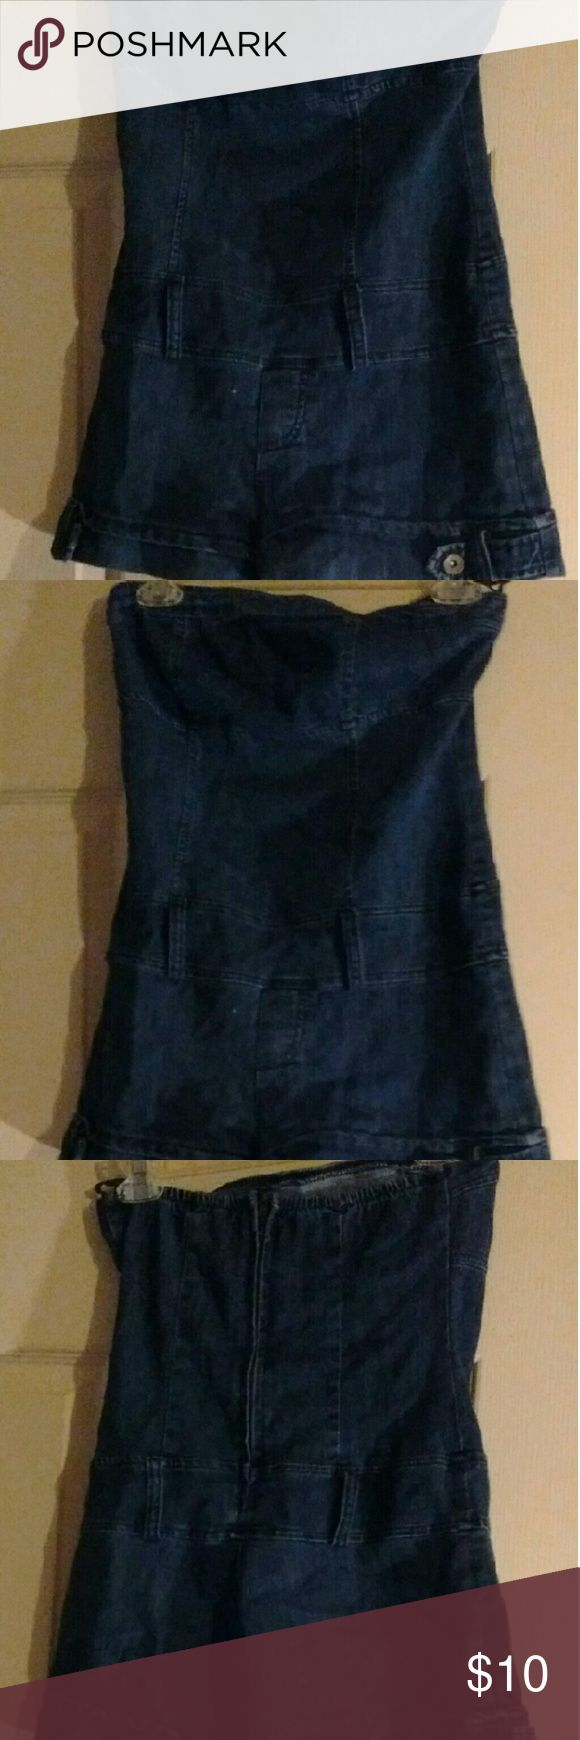 Cute blue jean romper Strapless blue jean romper. Worn a couple of times and it's in good condition. It has belt loops so u can wear a belt if you want too. Hot Kiss Pants Jumpsuits & Rompers